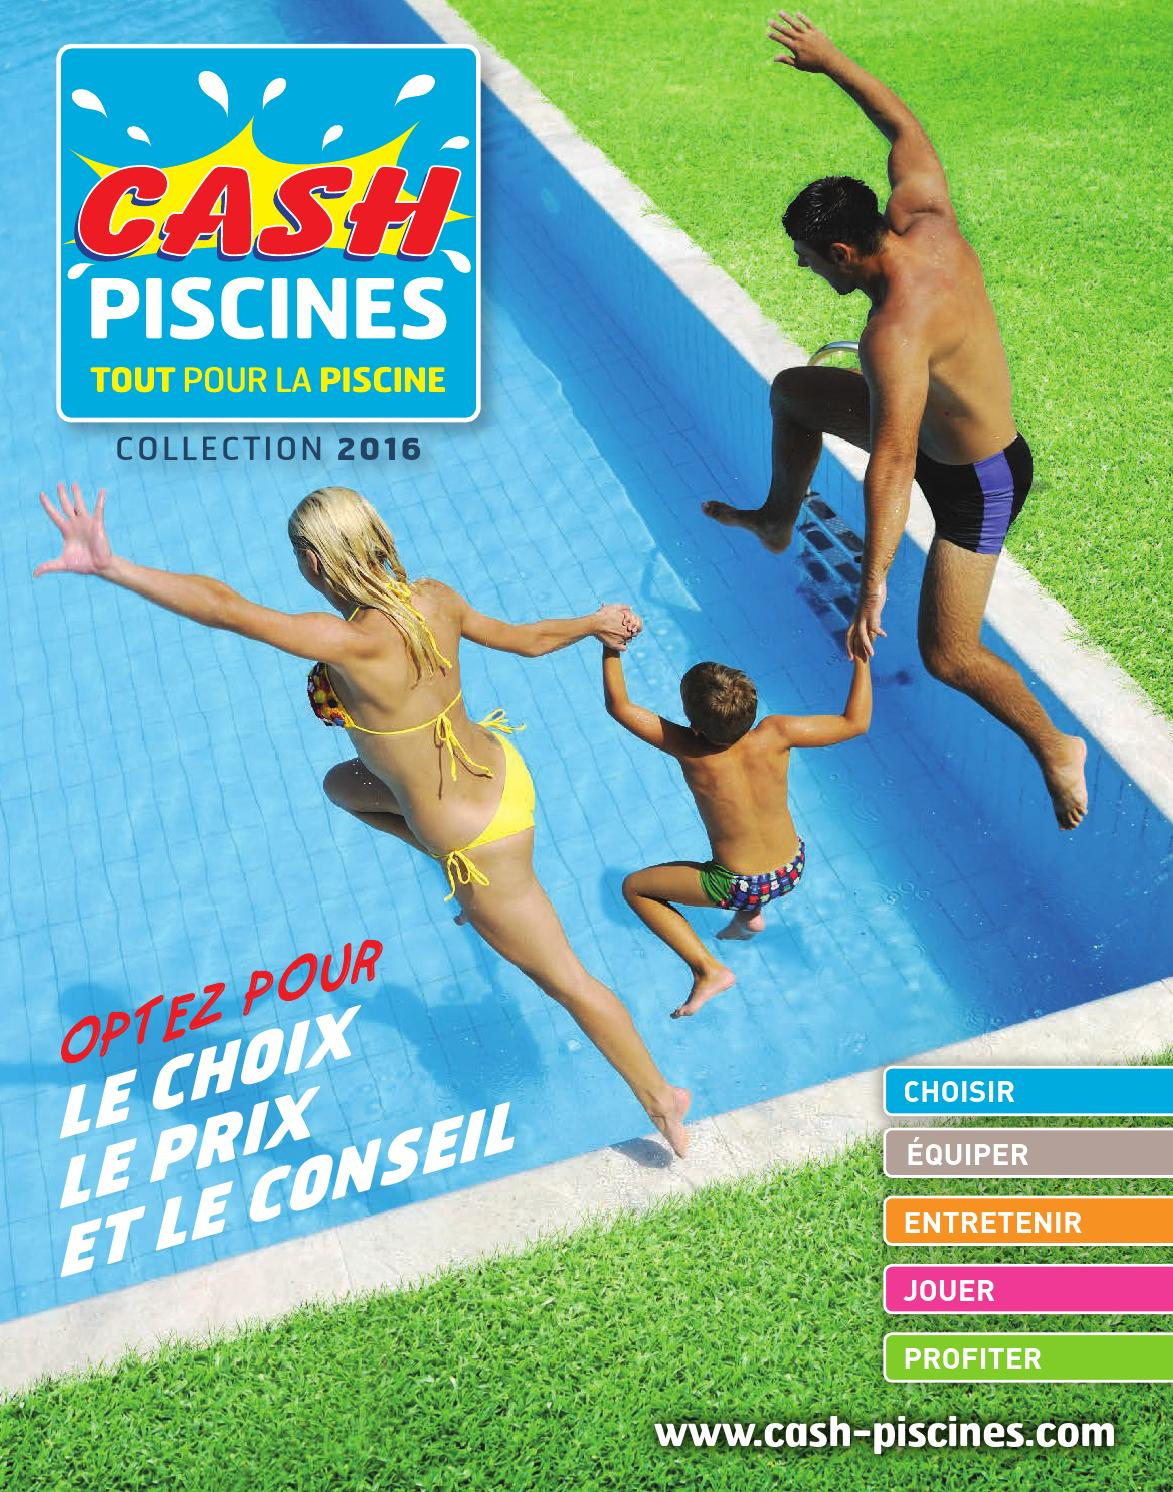 Cash piscines 2016 by octave octave issuu for Cash piscine bordeaux